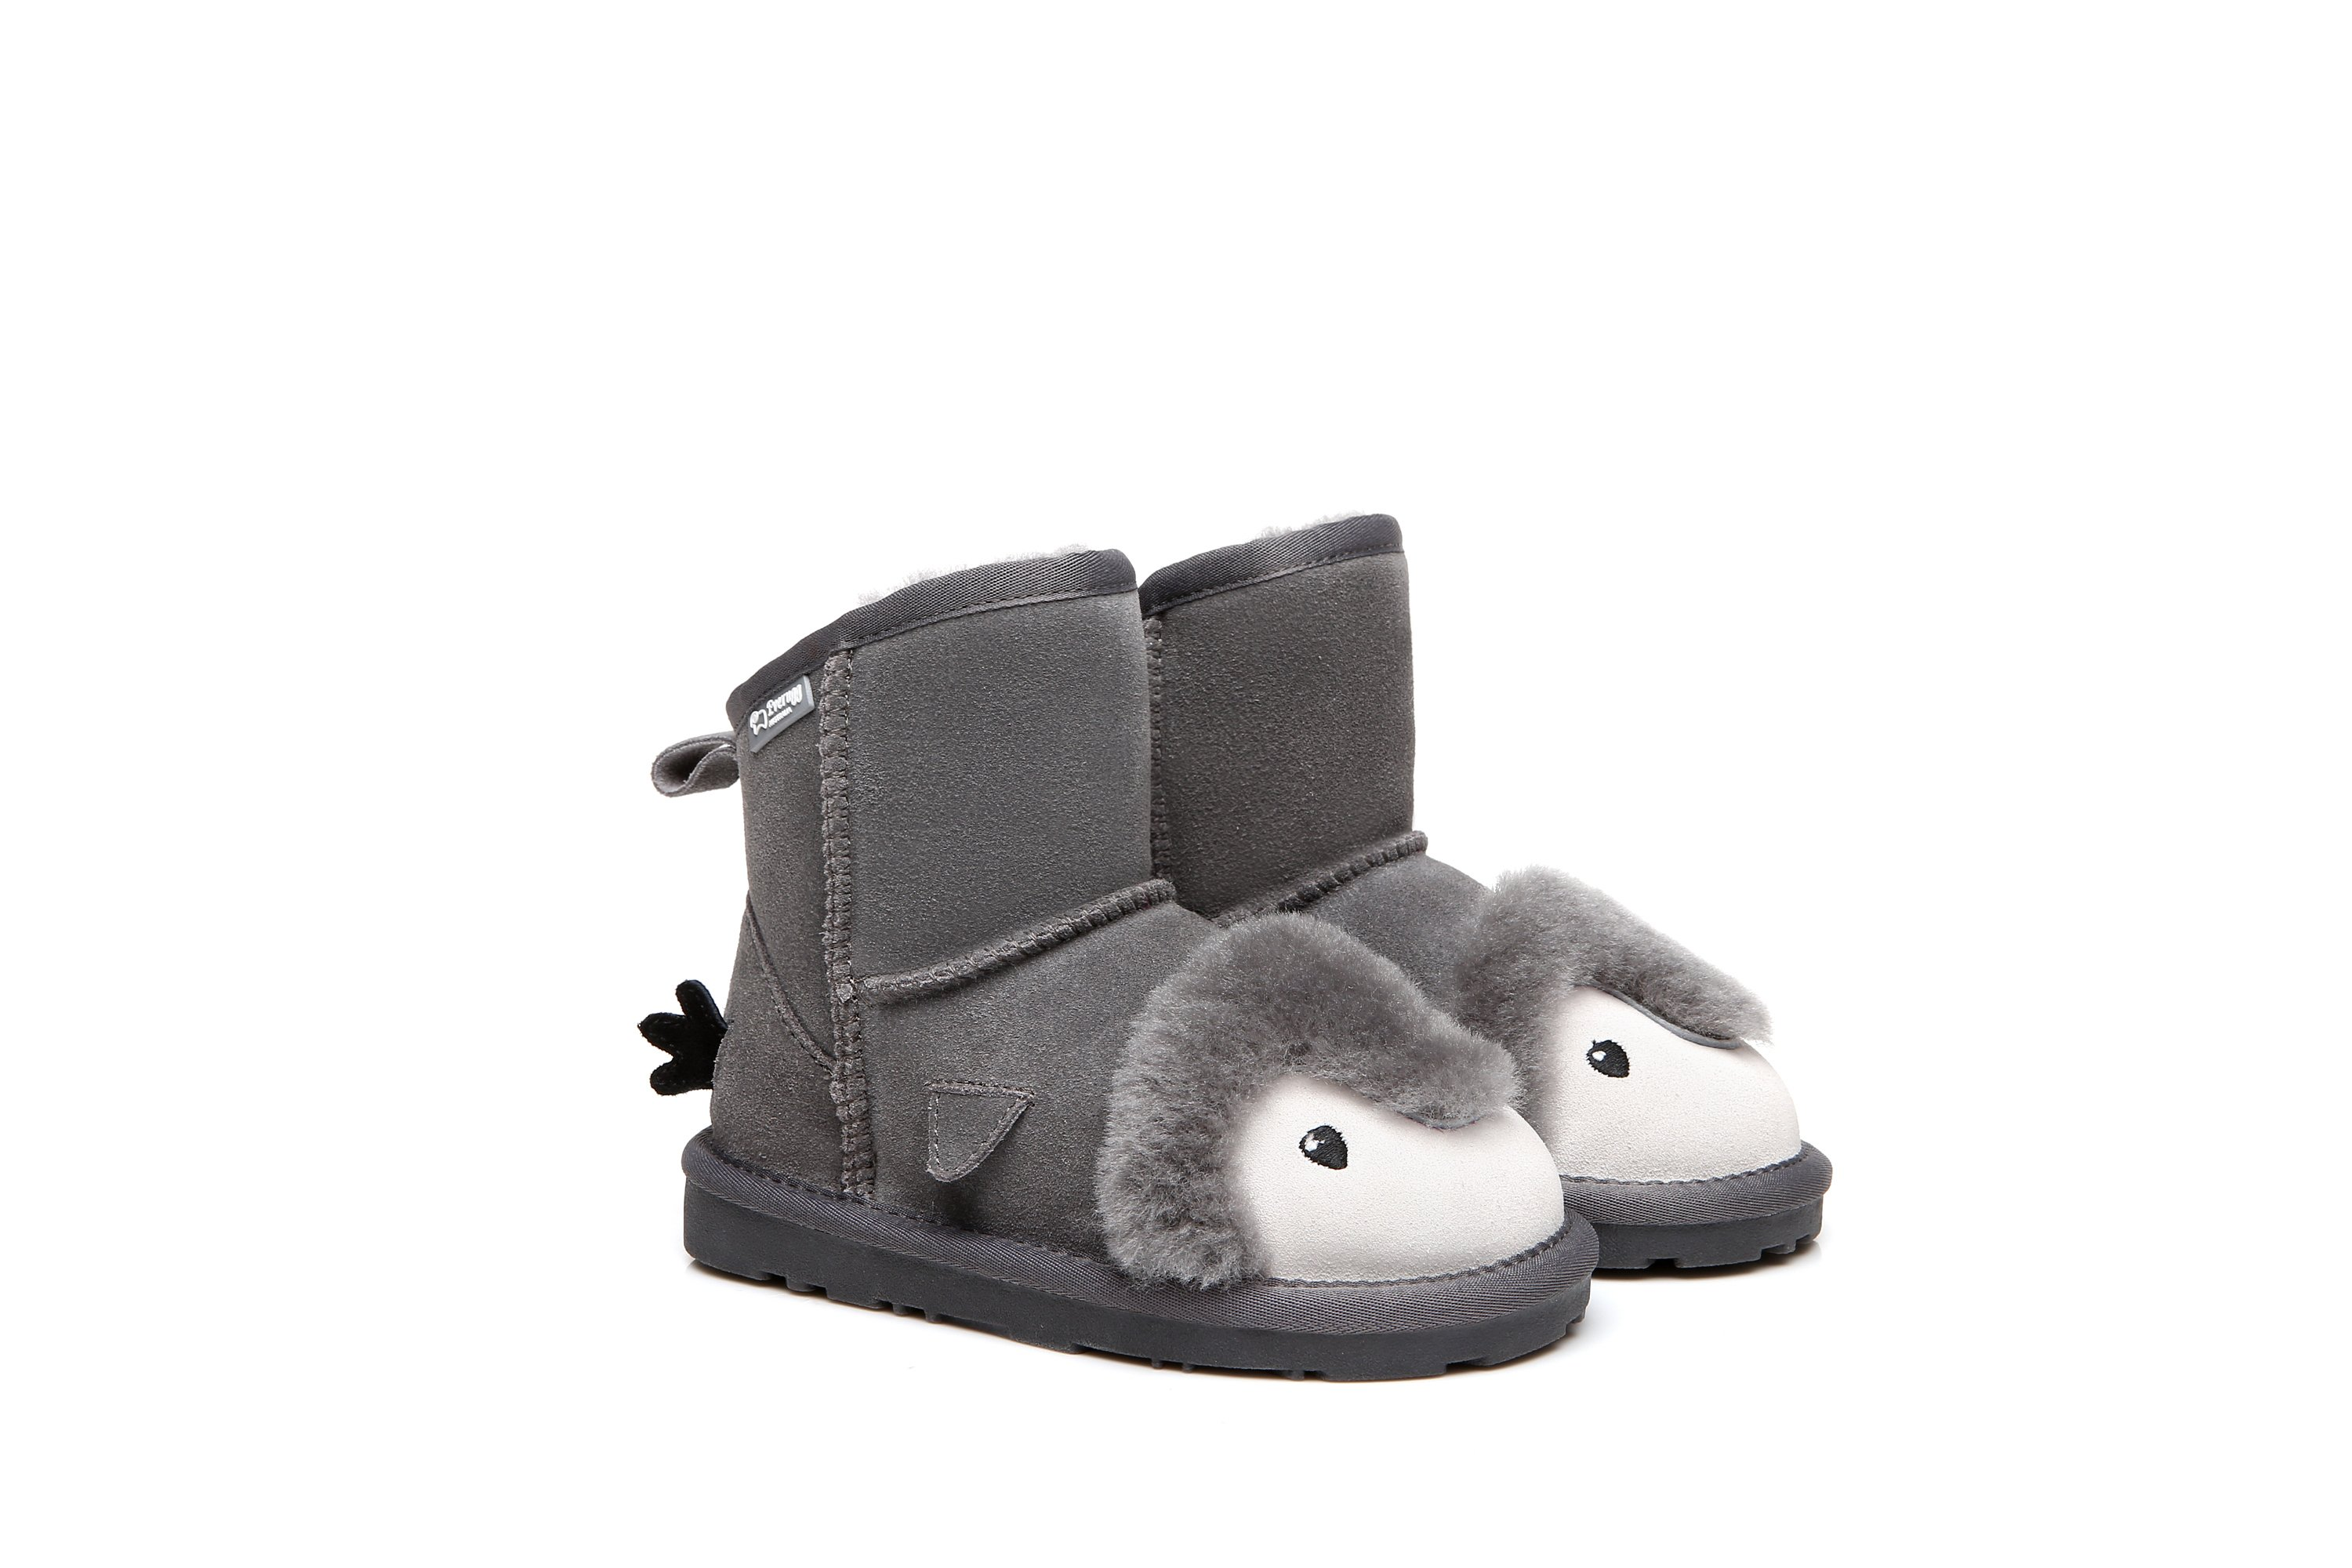 5402033be12 uggexpress.com.au: Buy One Kids Animal Boots Get One Free - UGG ...